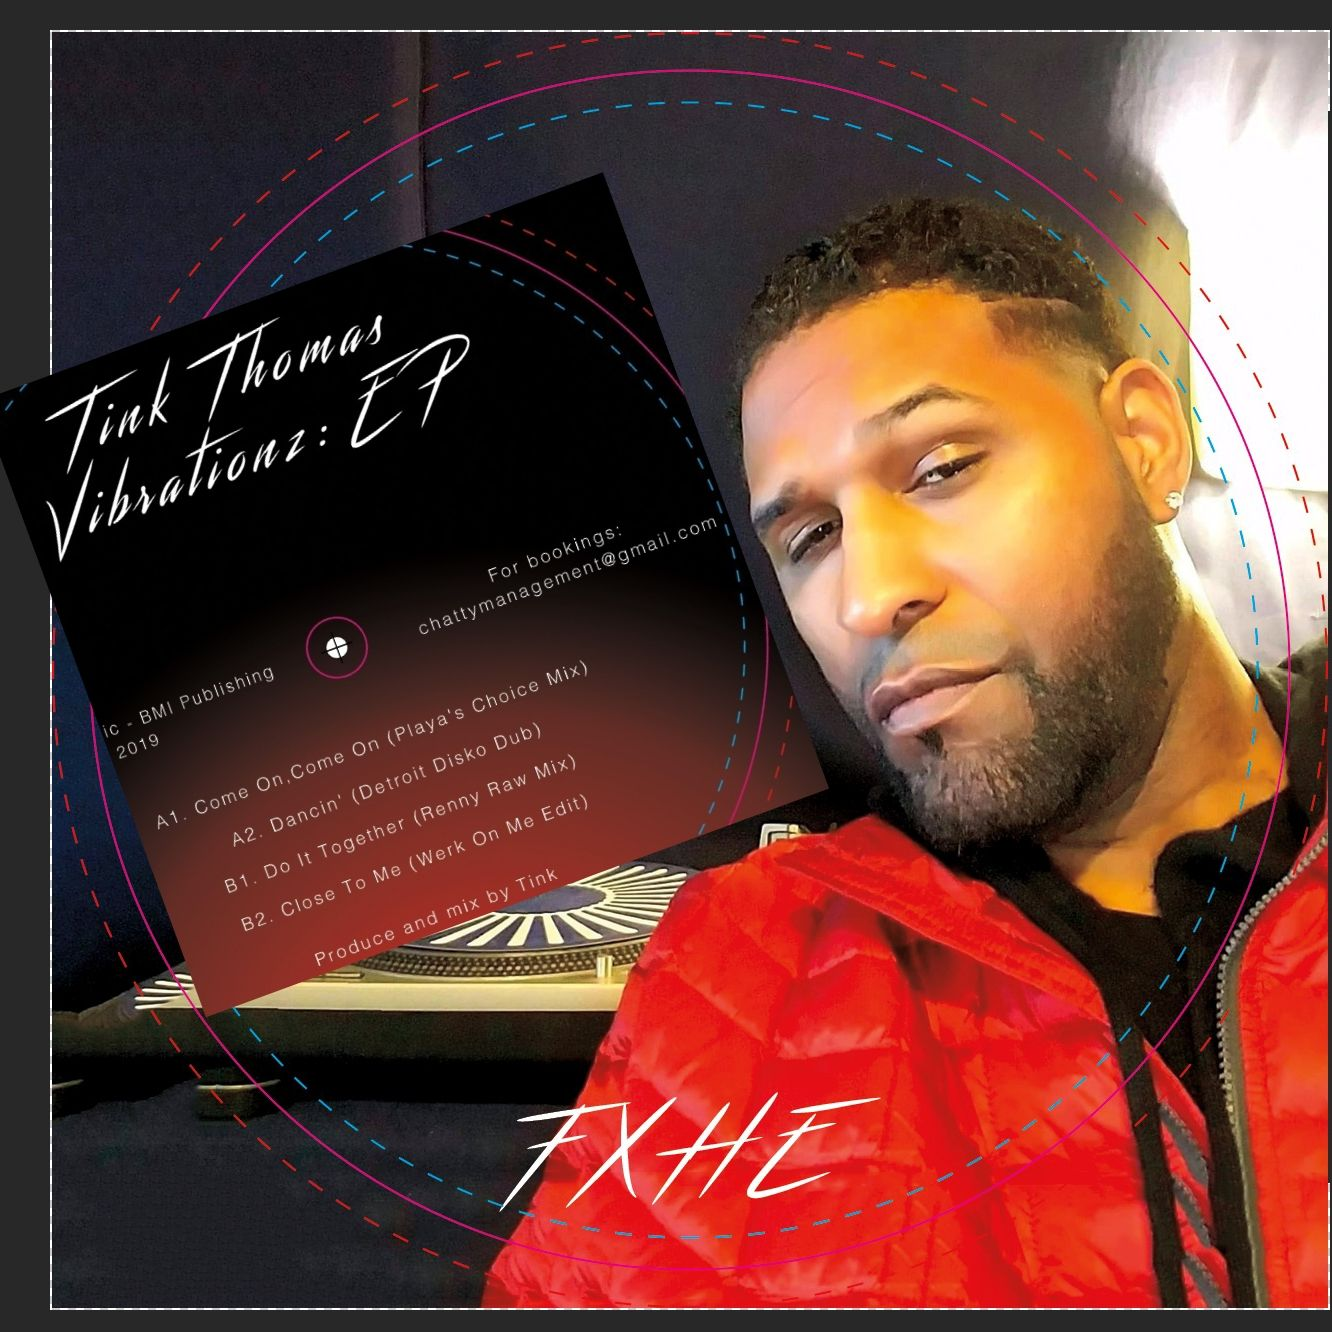 Tink Thomas - Vibrationz EP